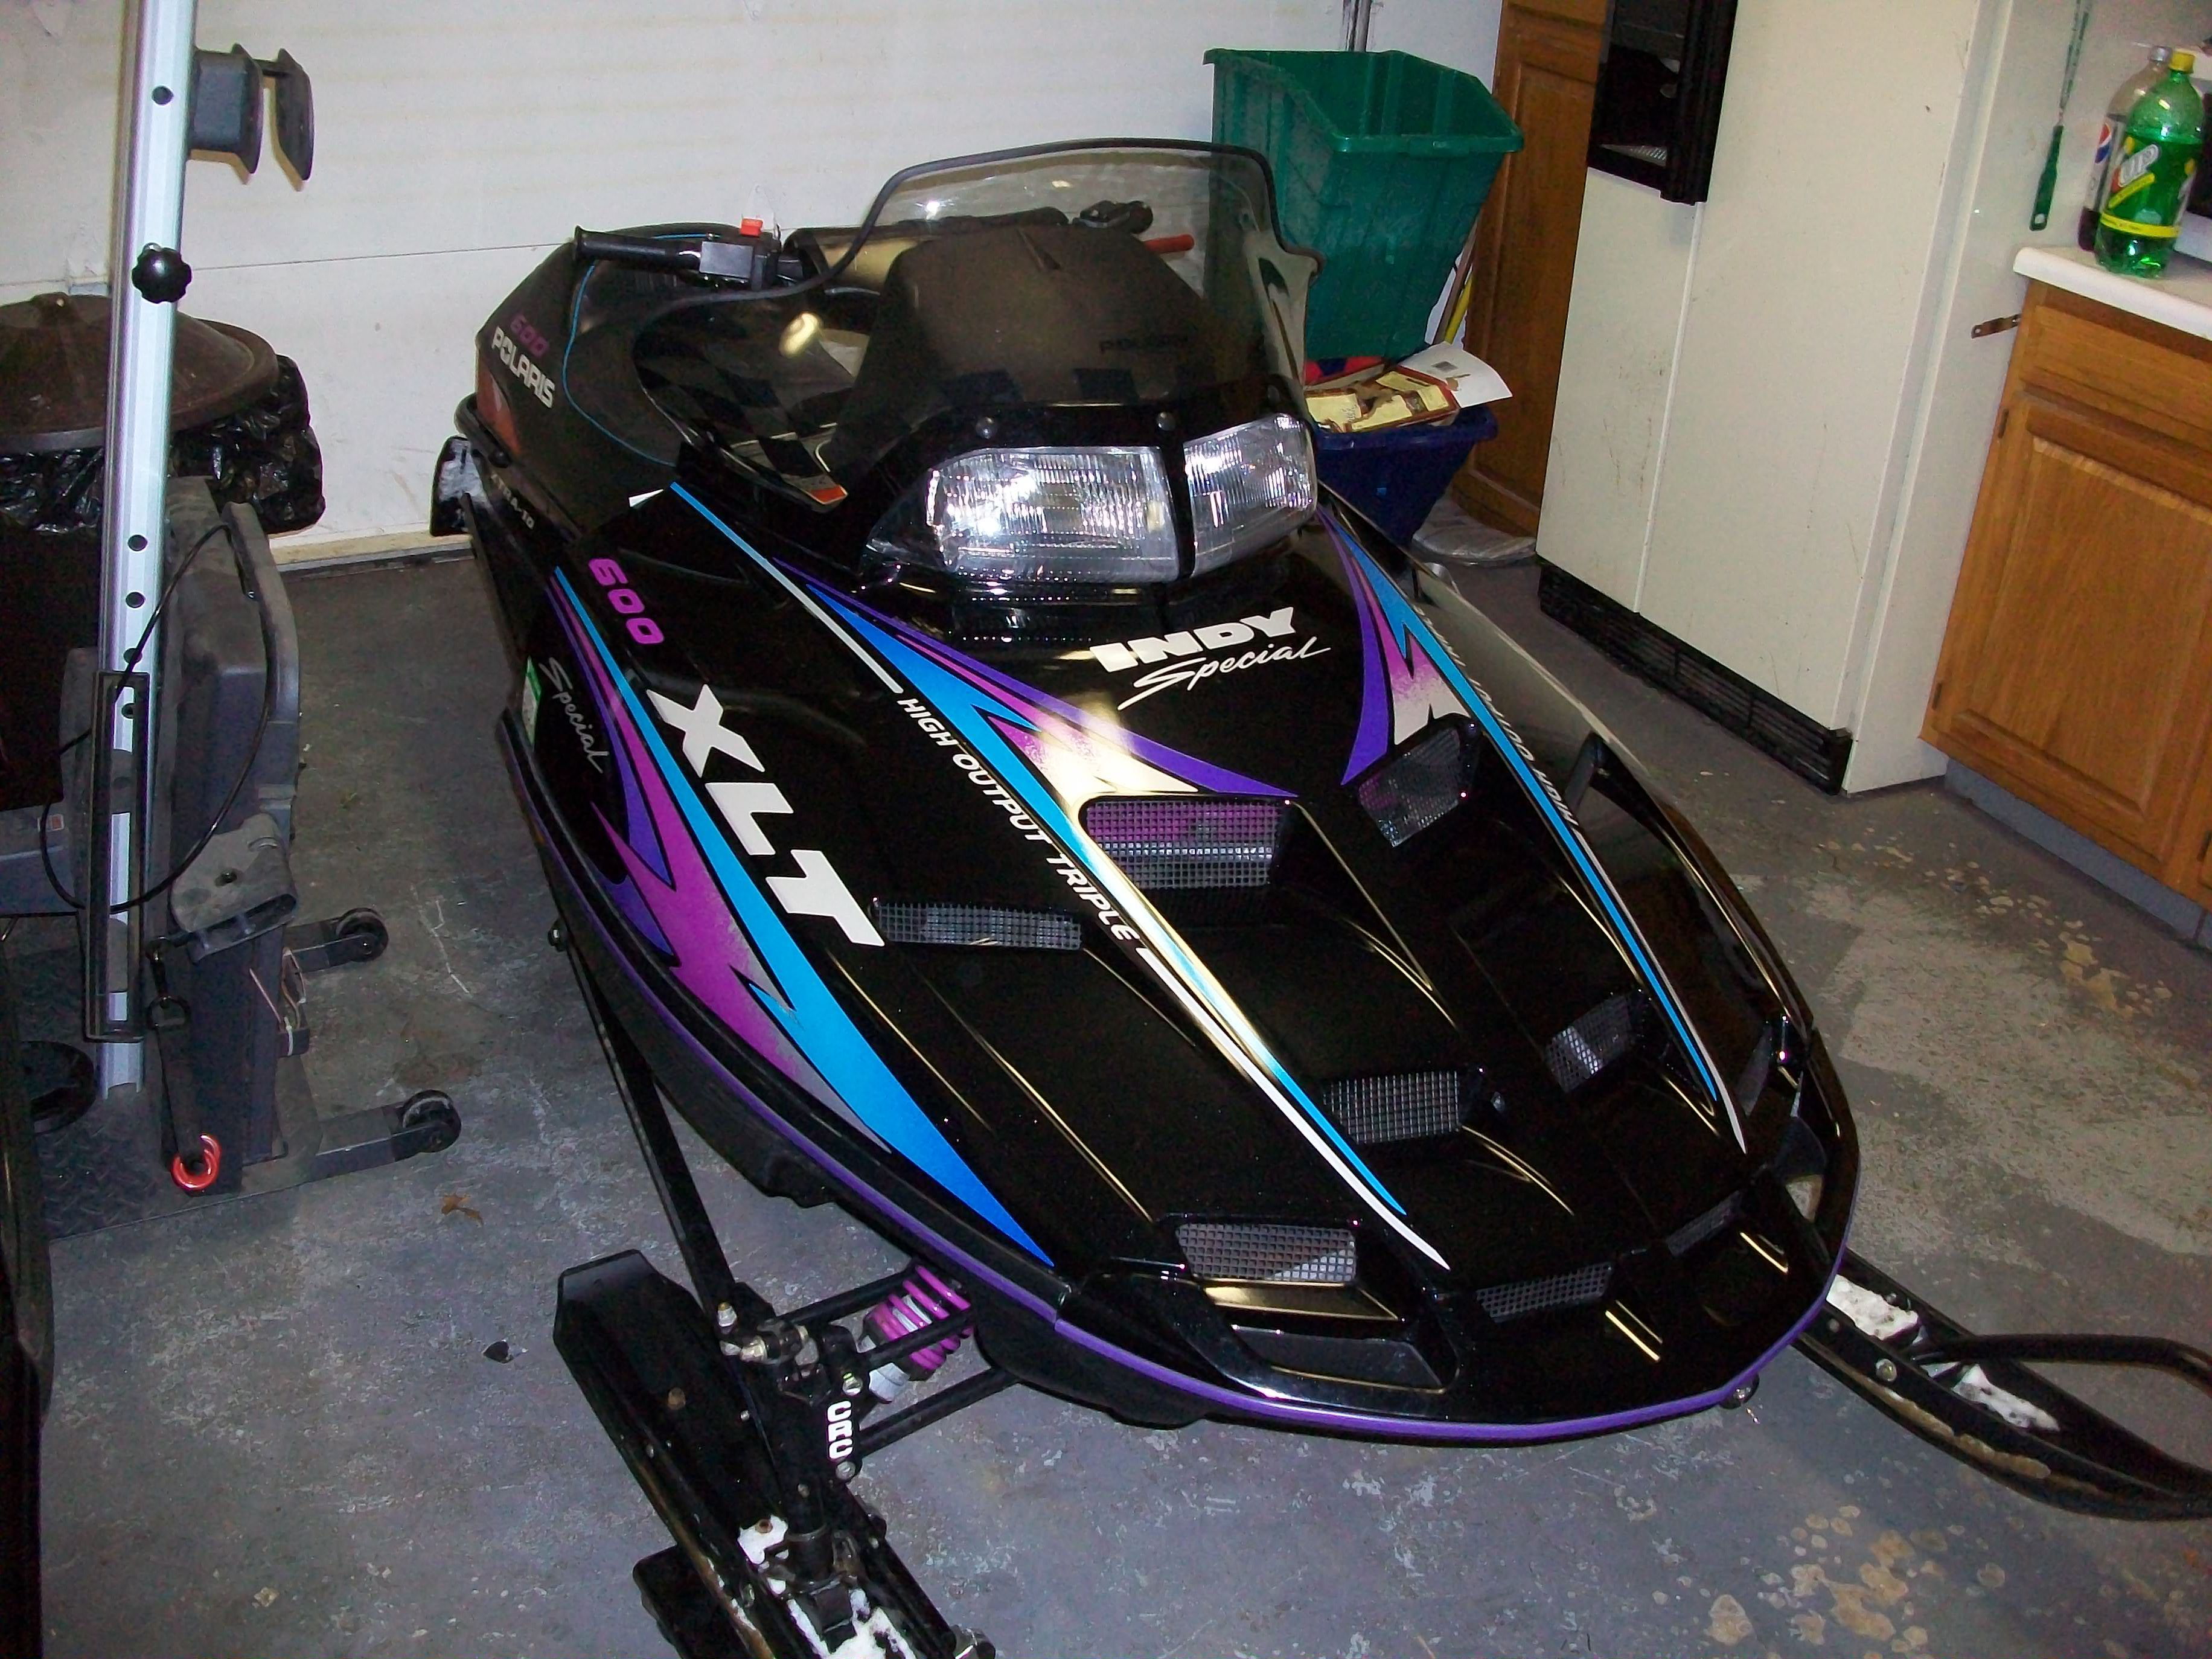 hight resolution of 1998 polaris xlt special google search polaris snowmobile snowmobiles sled lead sled